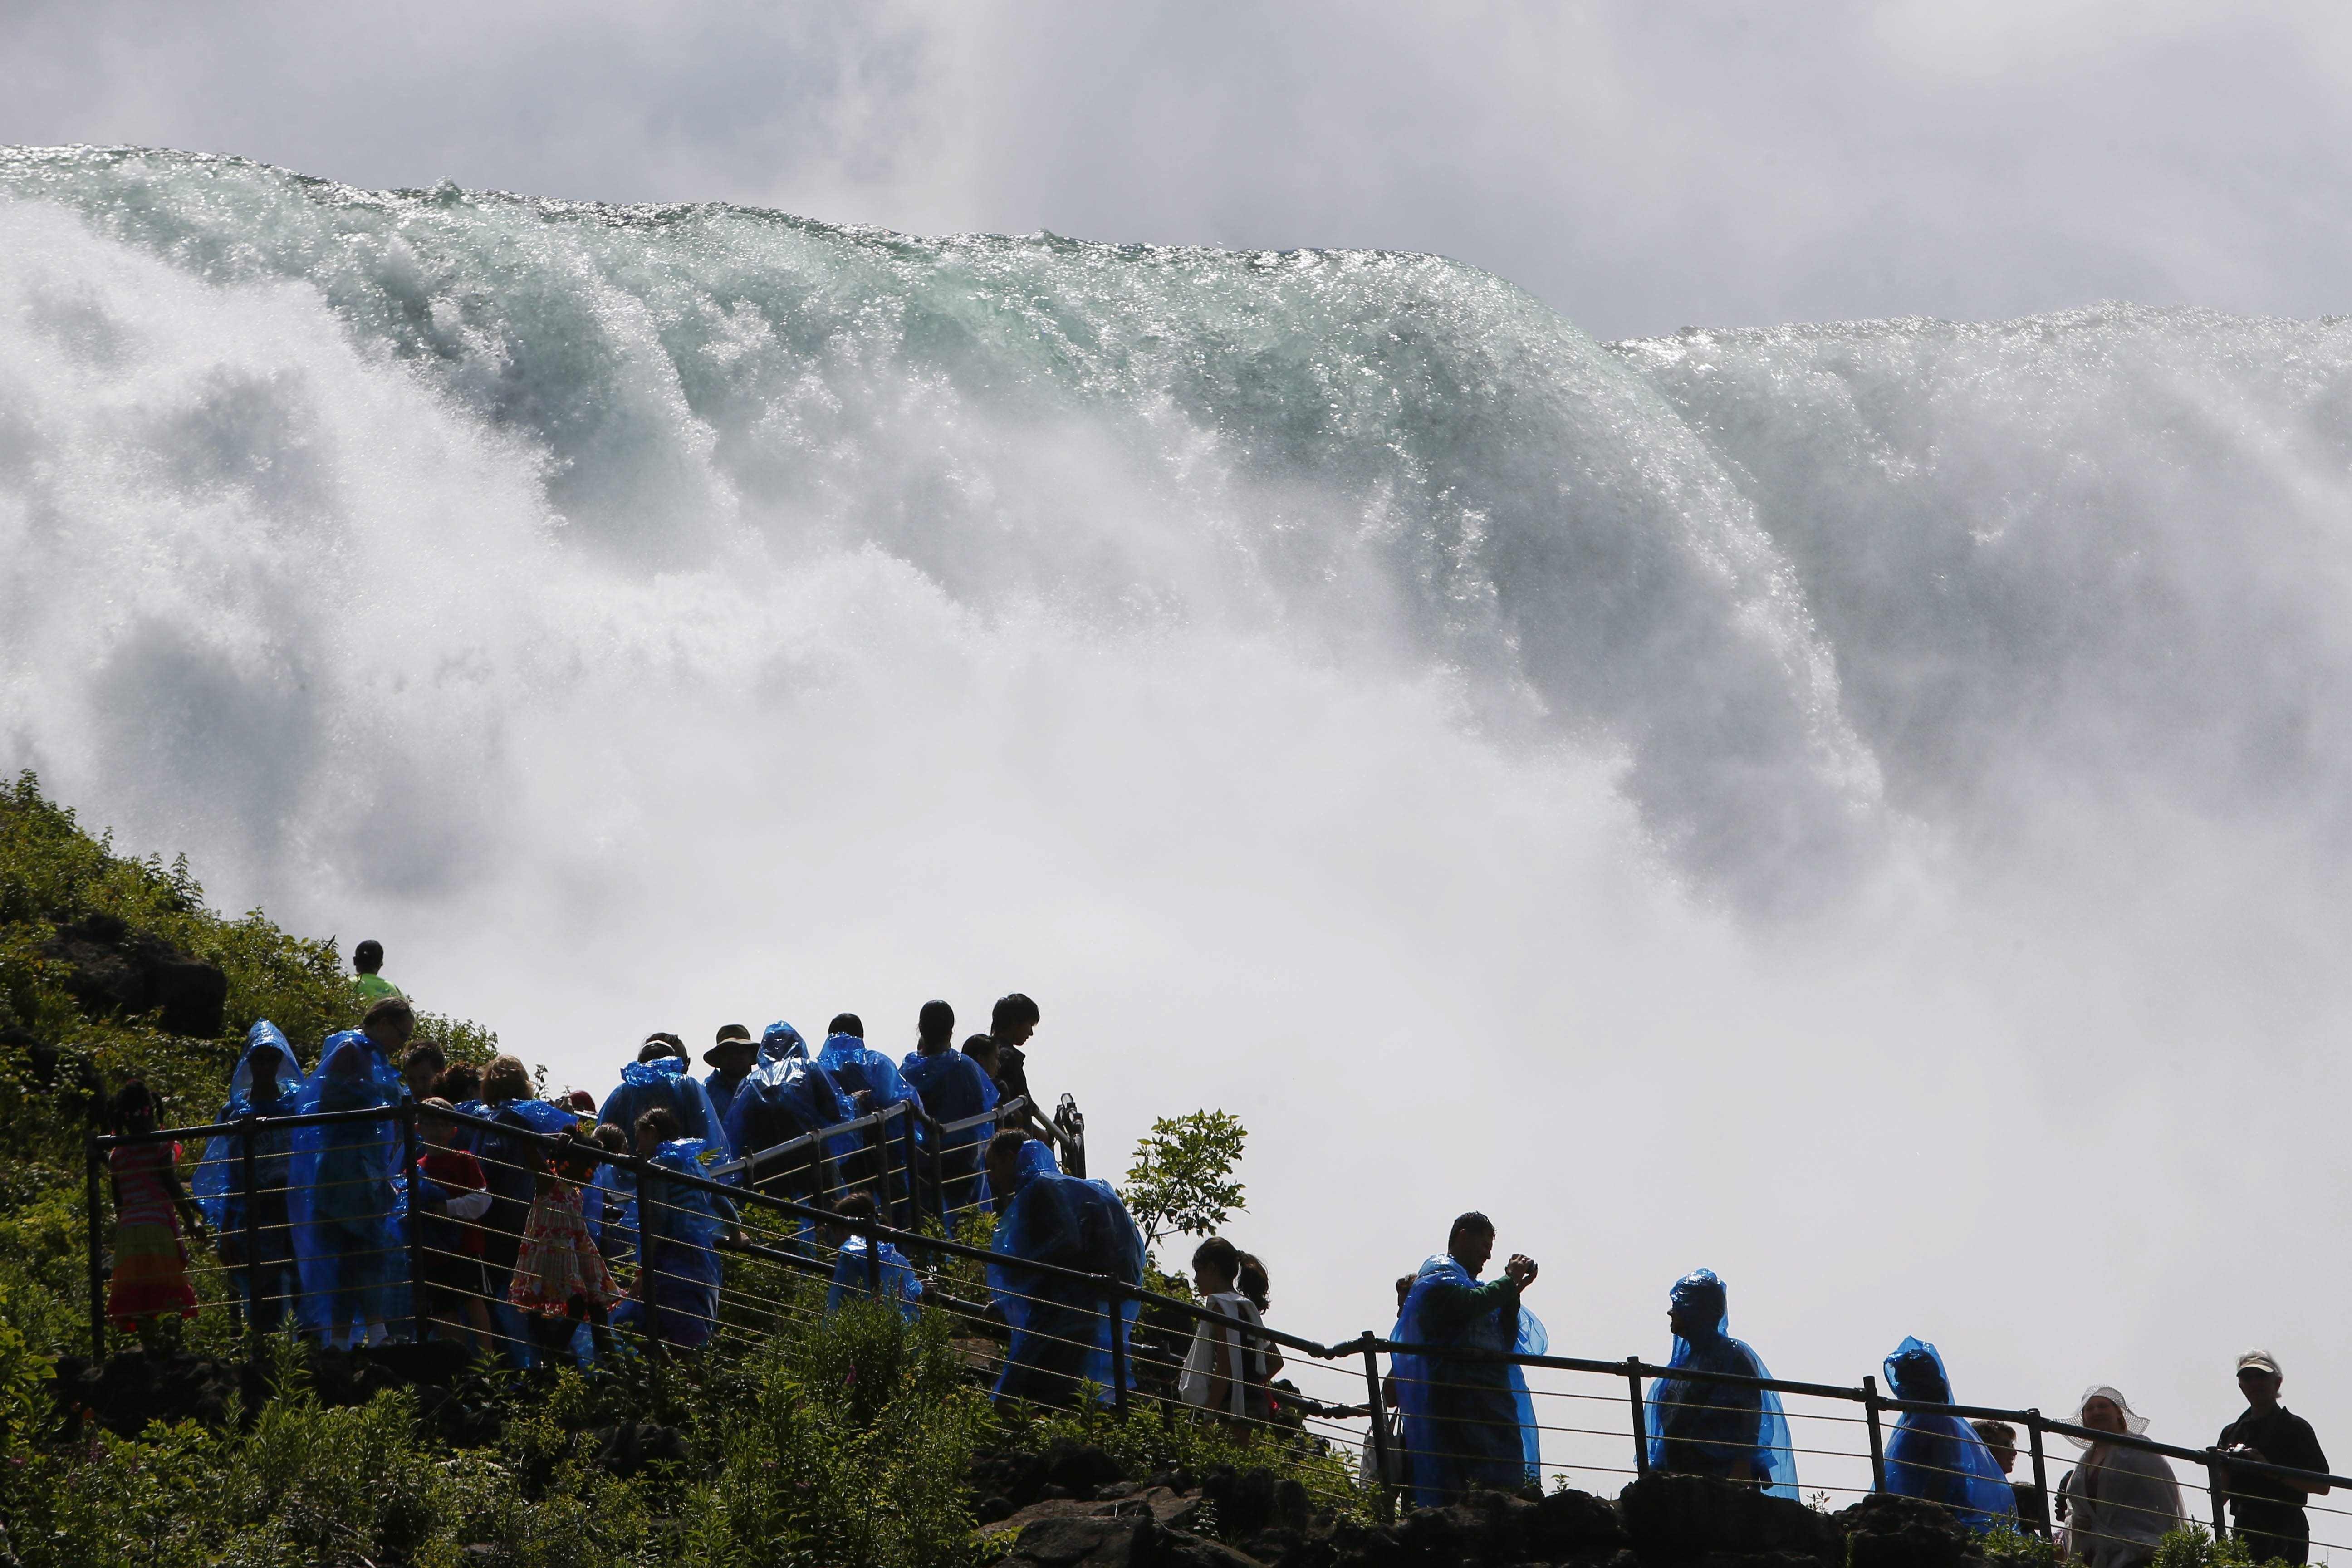 Crow's Nest in Niagara Falls is high on list for visitors to U.S. side, but the challenge is to make the list longer.